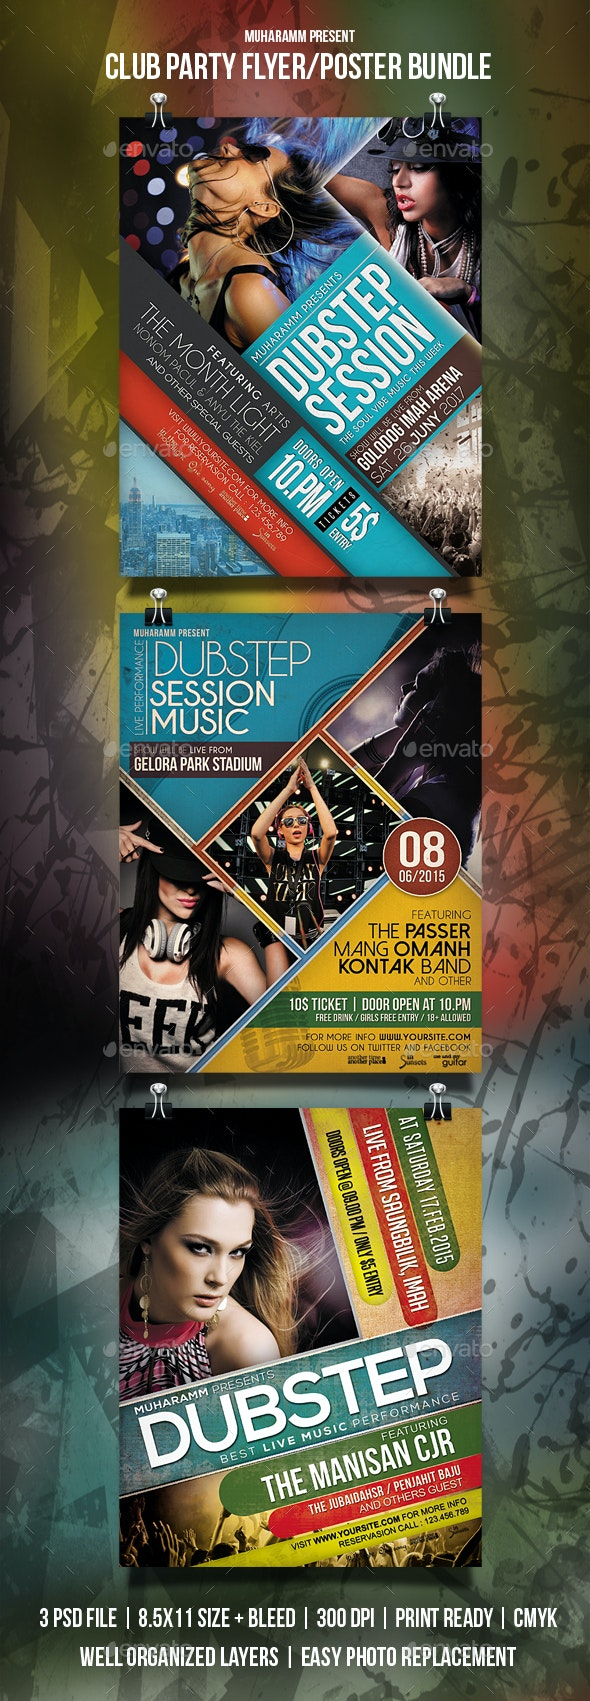 Club Party Flyer / Poster Bundle - Clubs & Parties Events